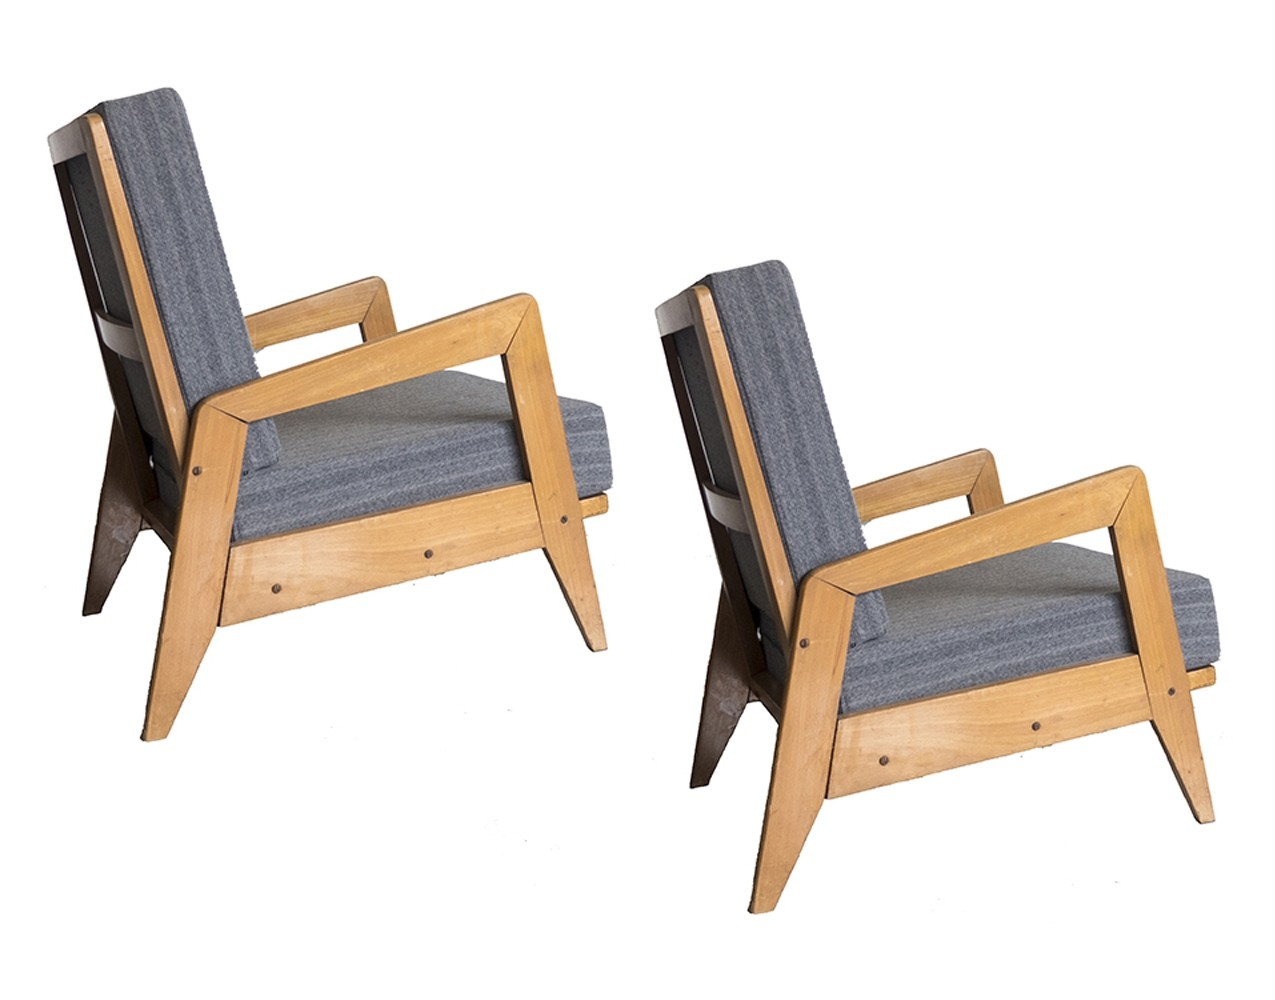 Set Of 2 Italian Rationalist Wooden Armchairs, 1940s